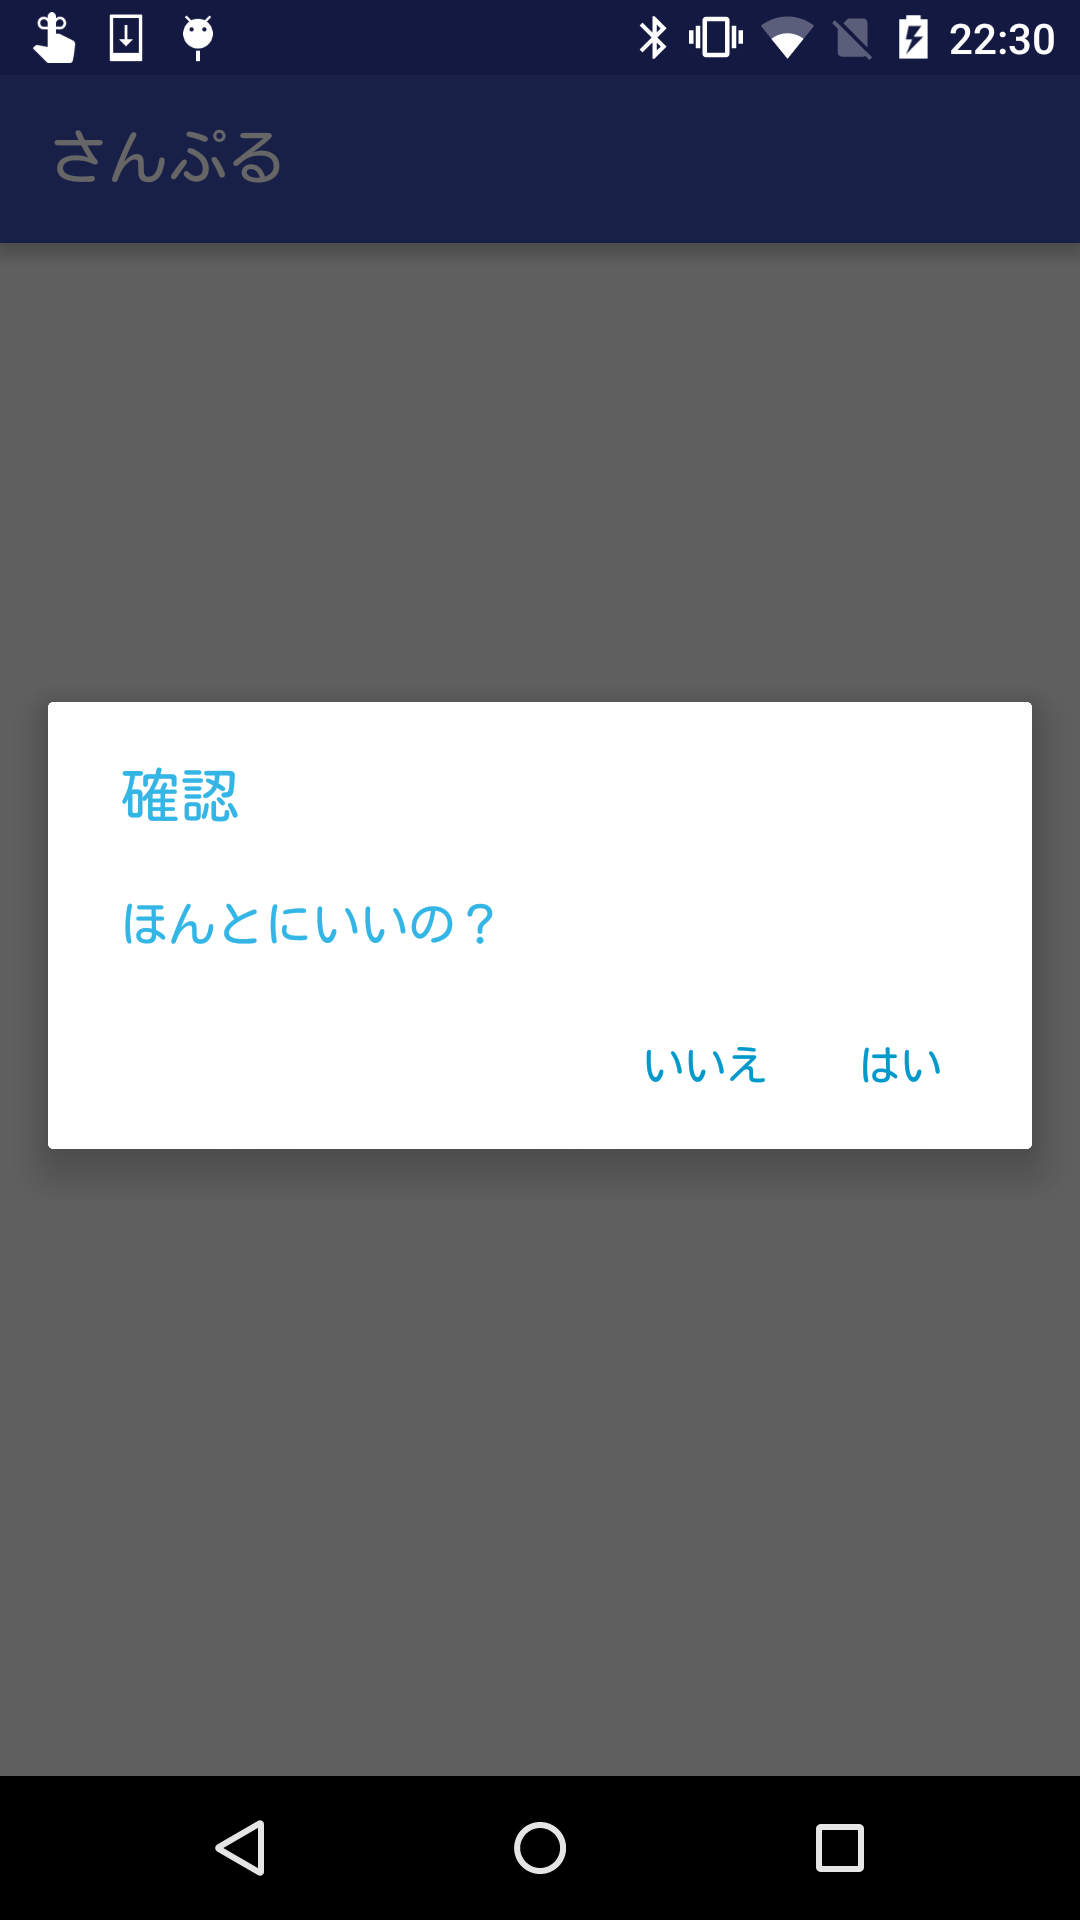 device-2015-11-16-223049.png